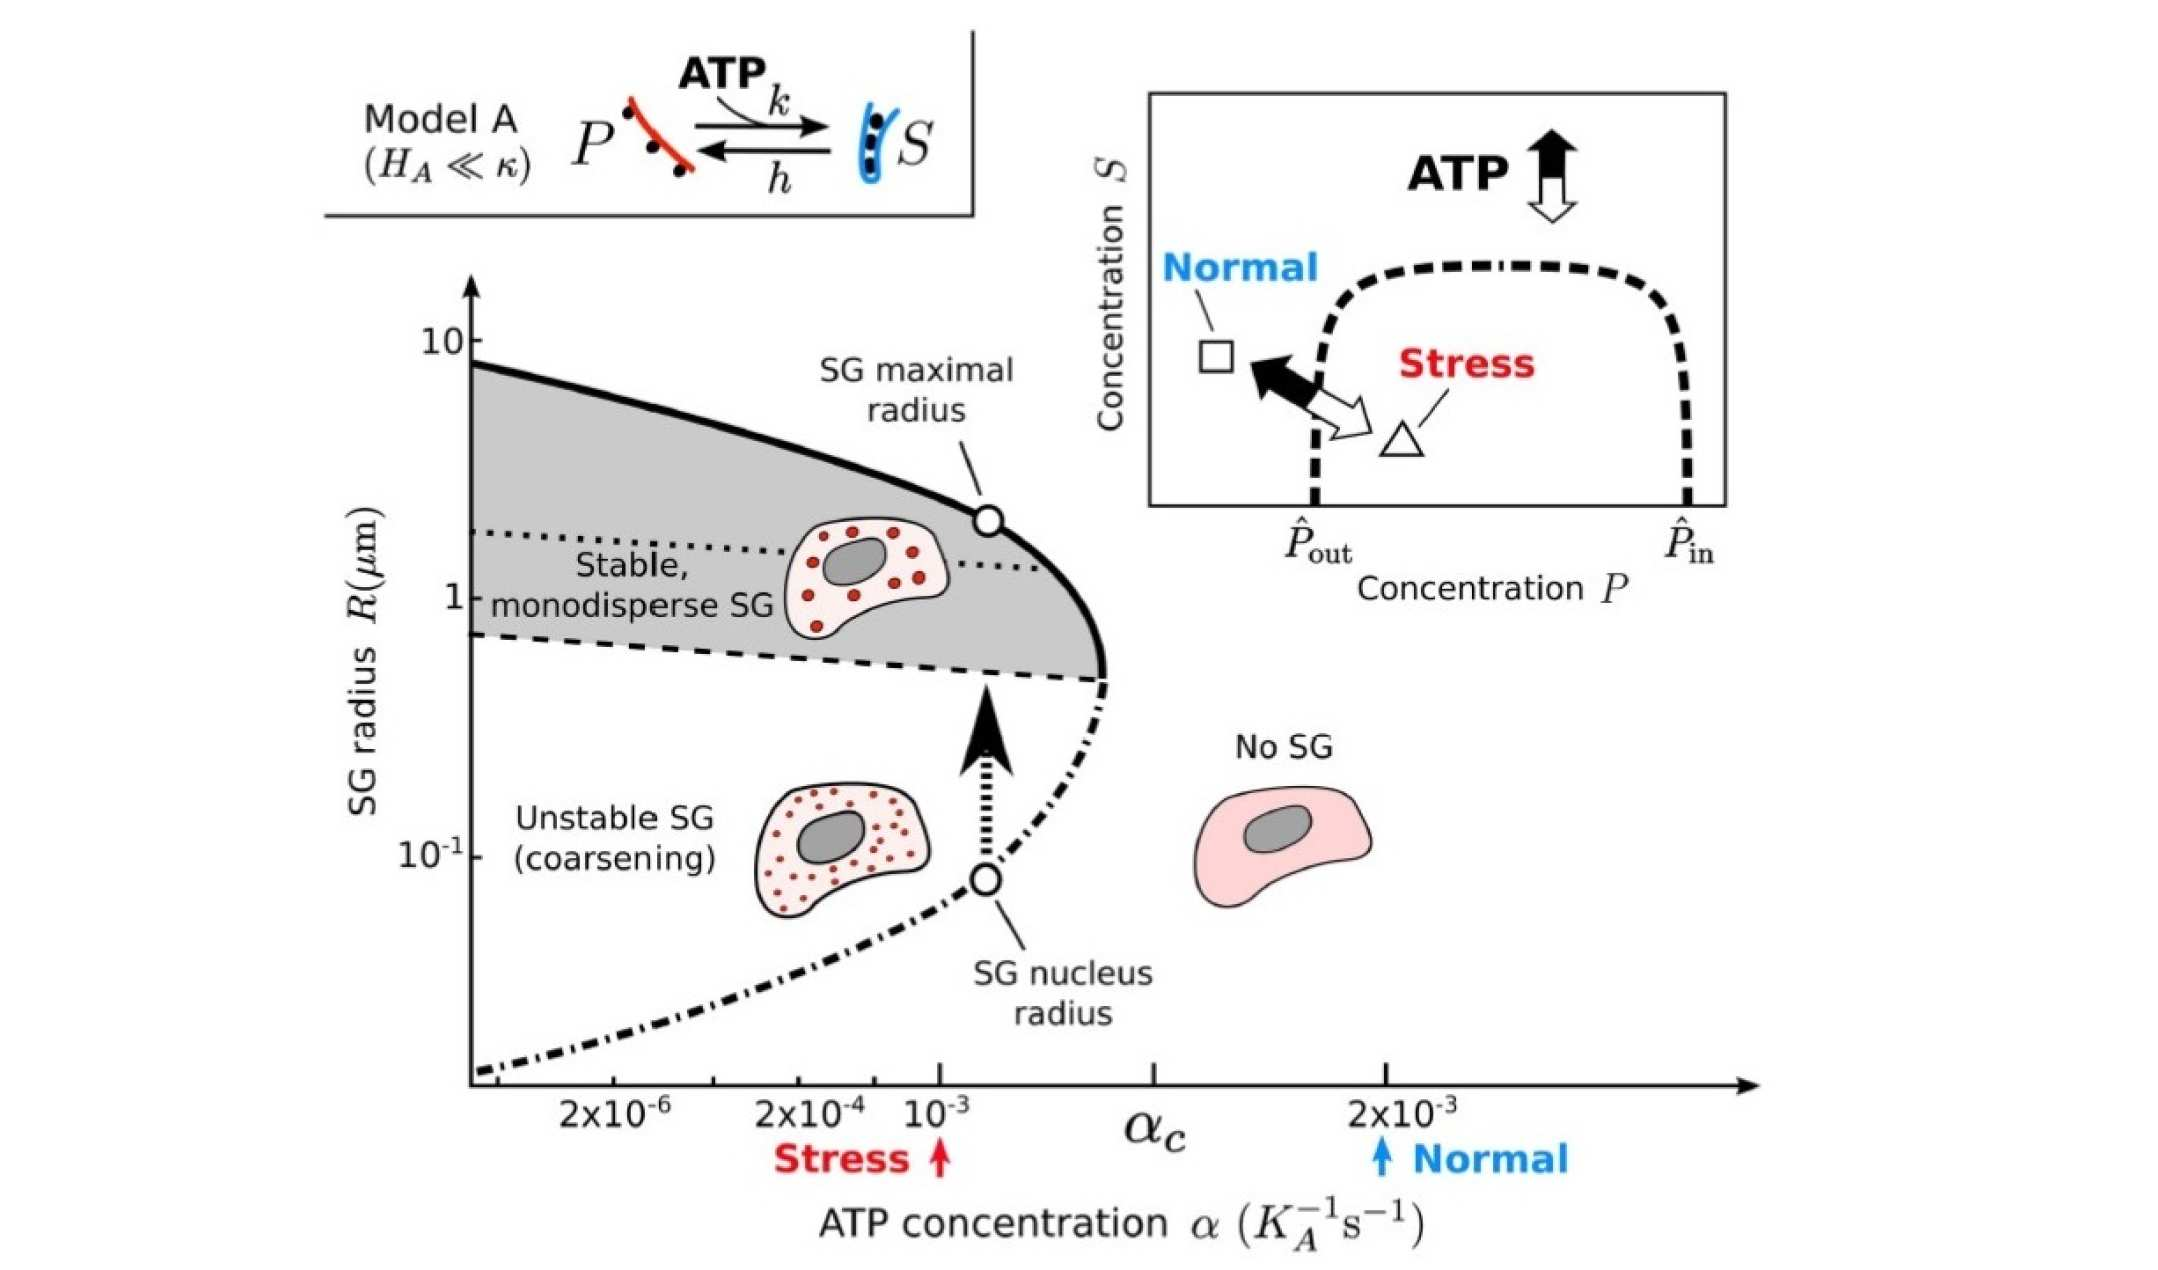 Chiu Fan Lee's group uses a non-equilibrium phase separation model to explain how ATP-depletion can trigger stress granule formation